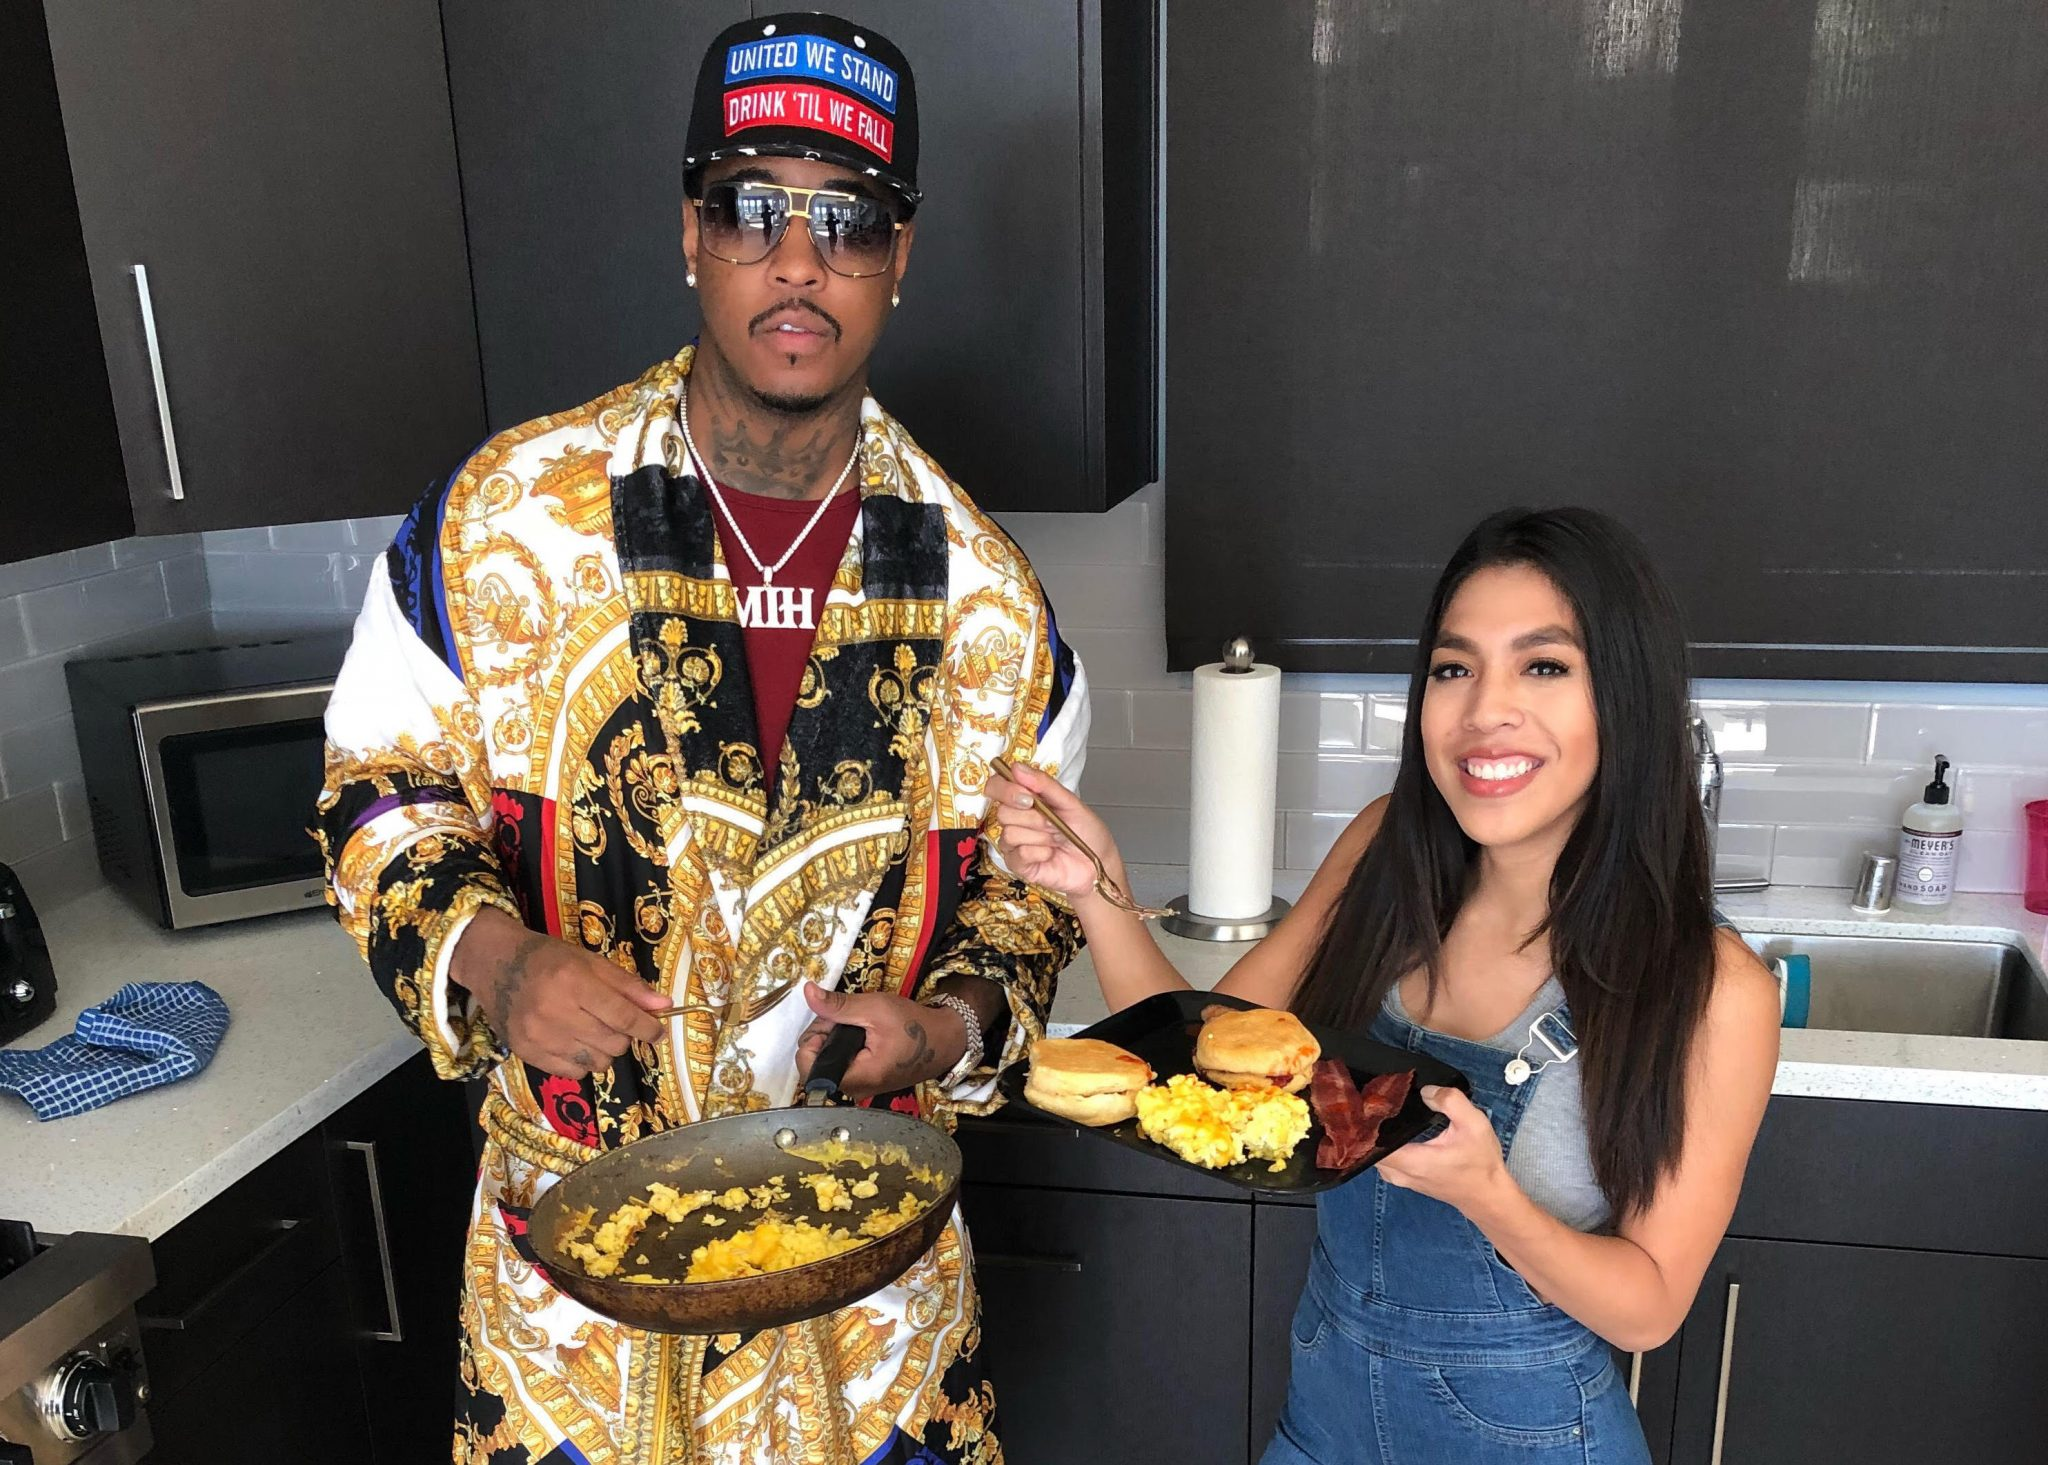 Cooking Breakfast with Jeremih